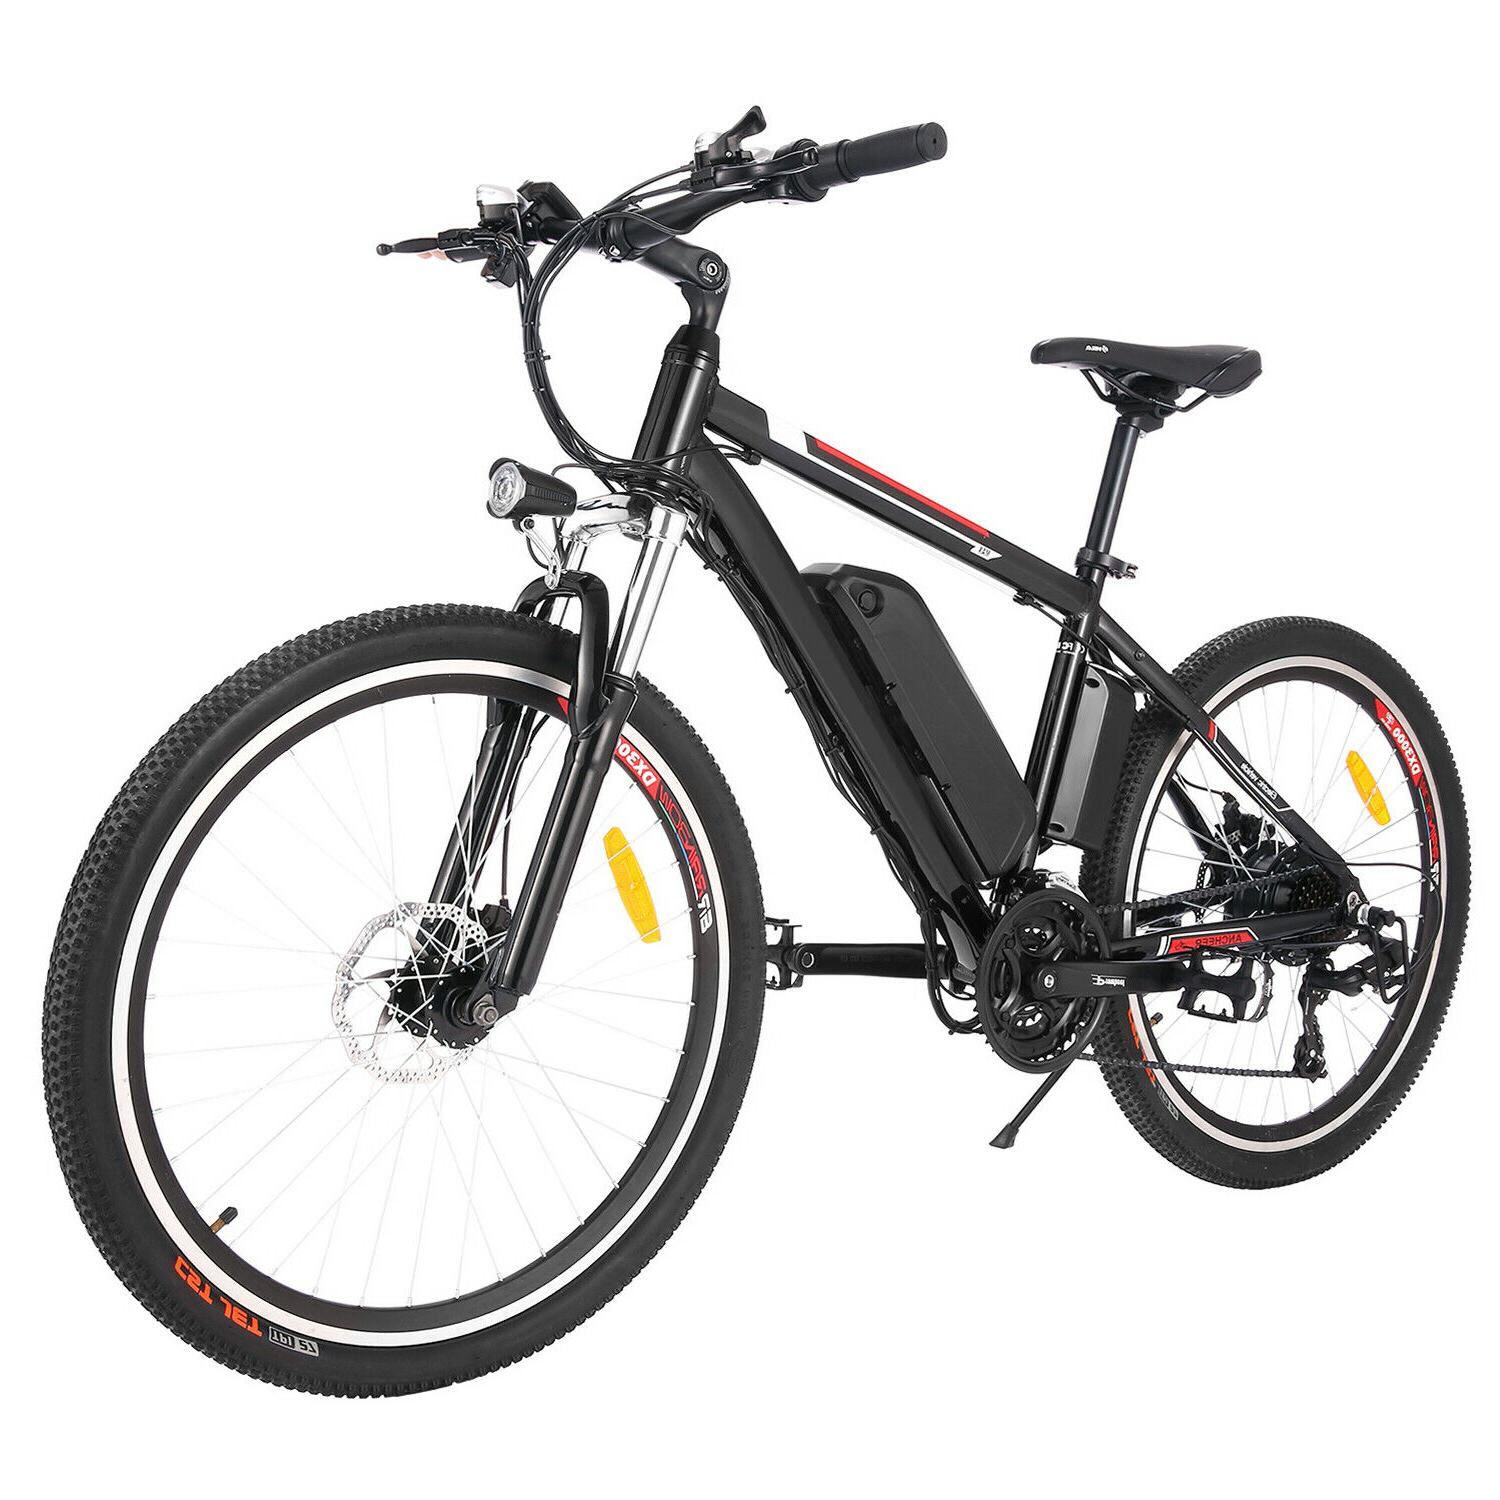 500W Mountain Bicycle Lithium-Ion Battery USA